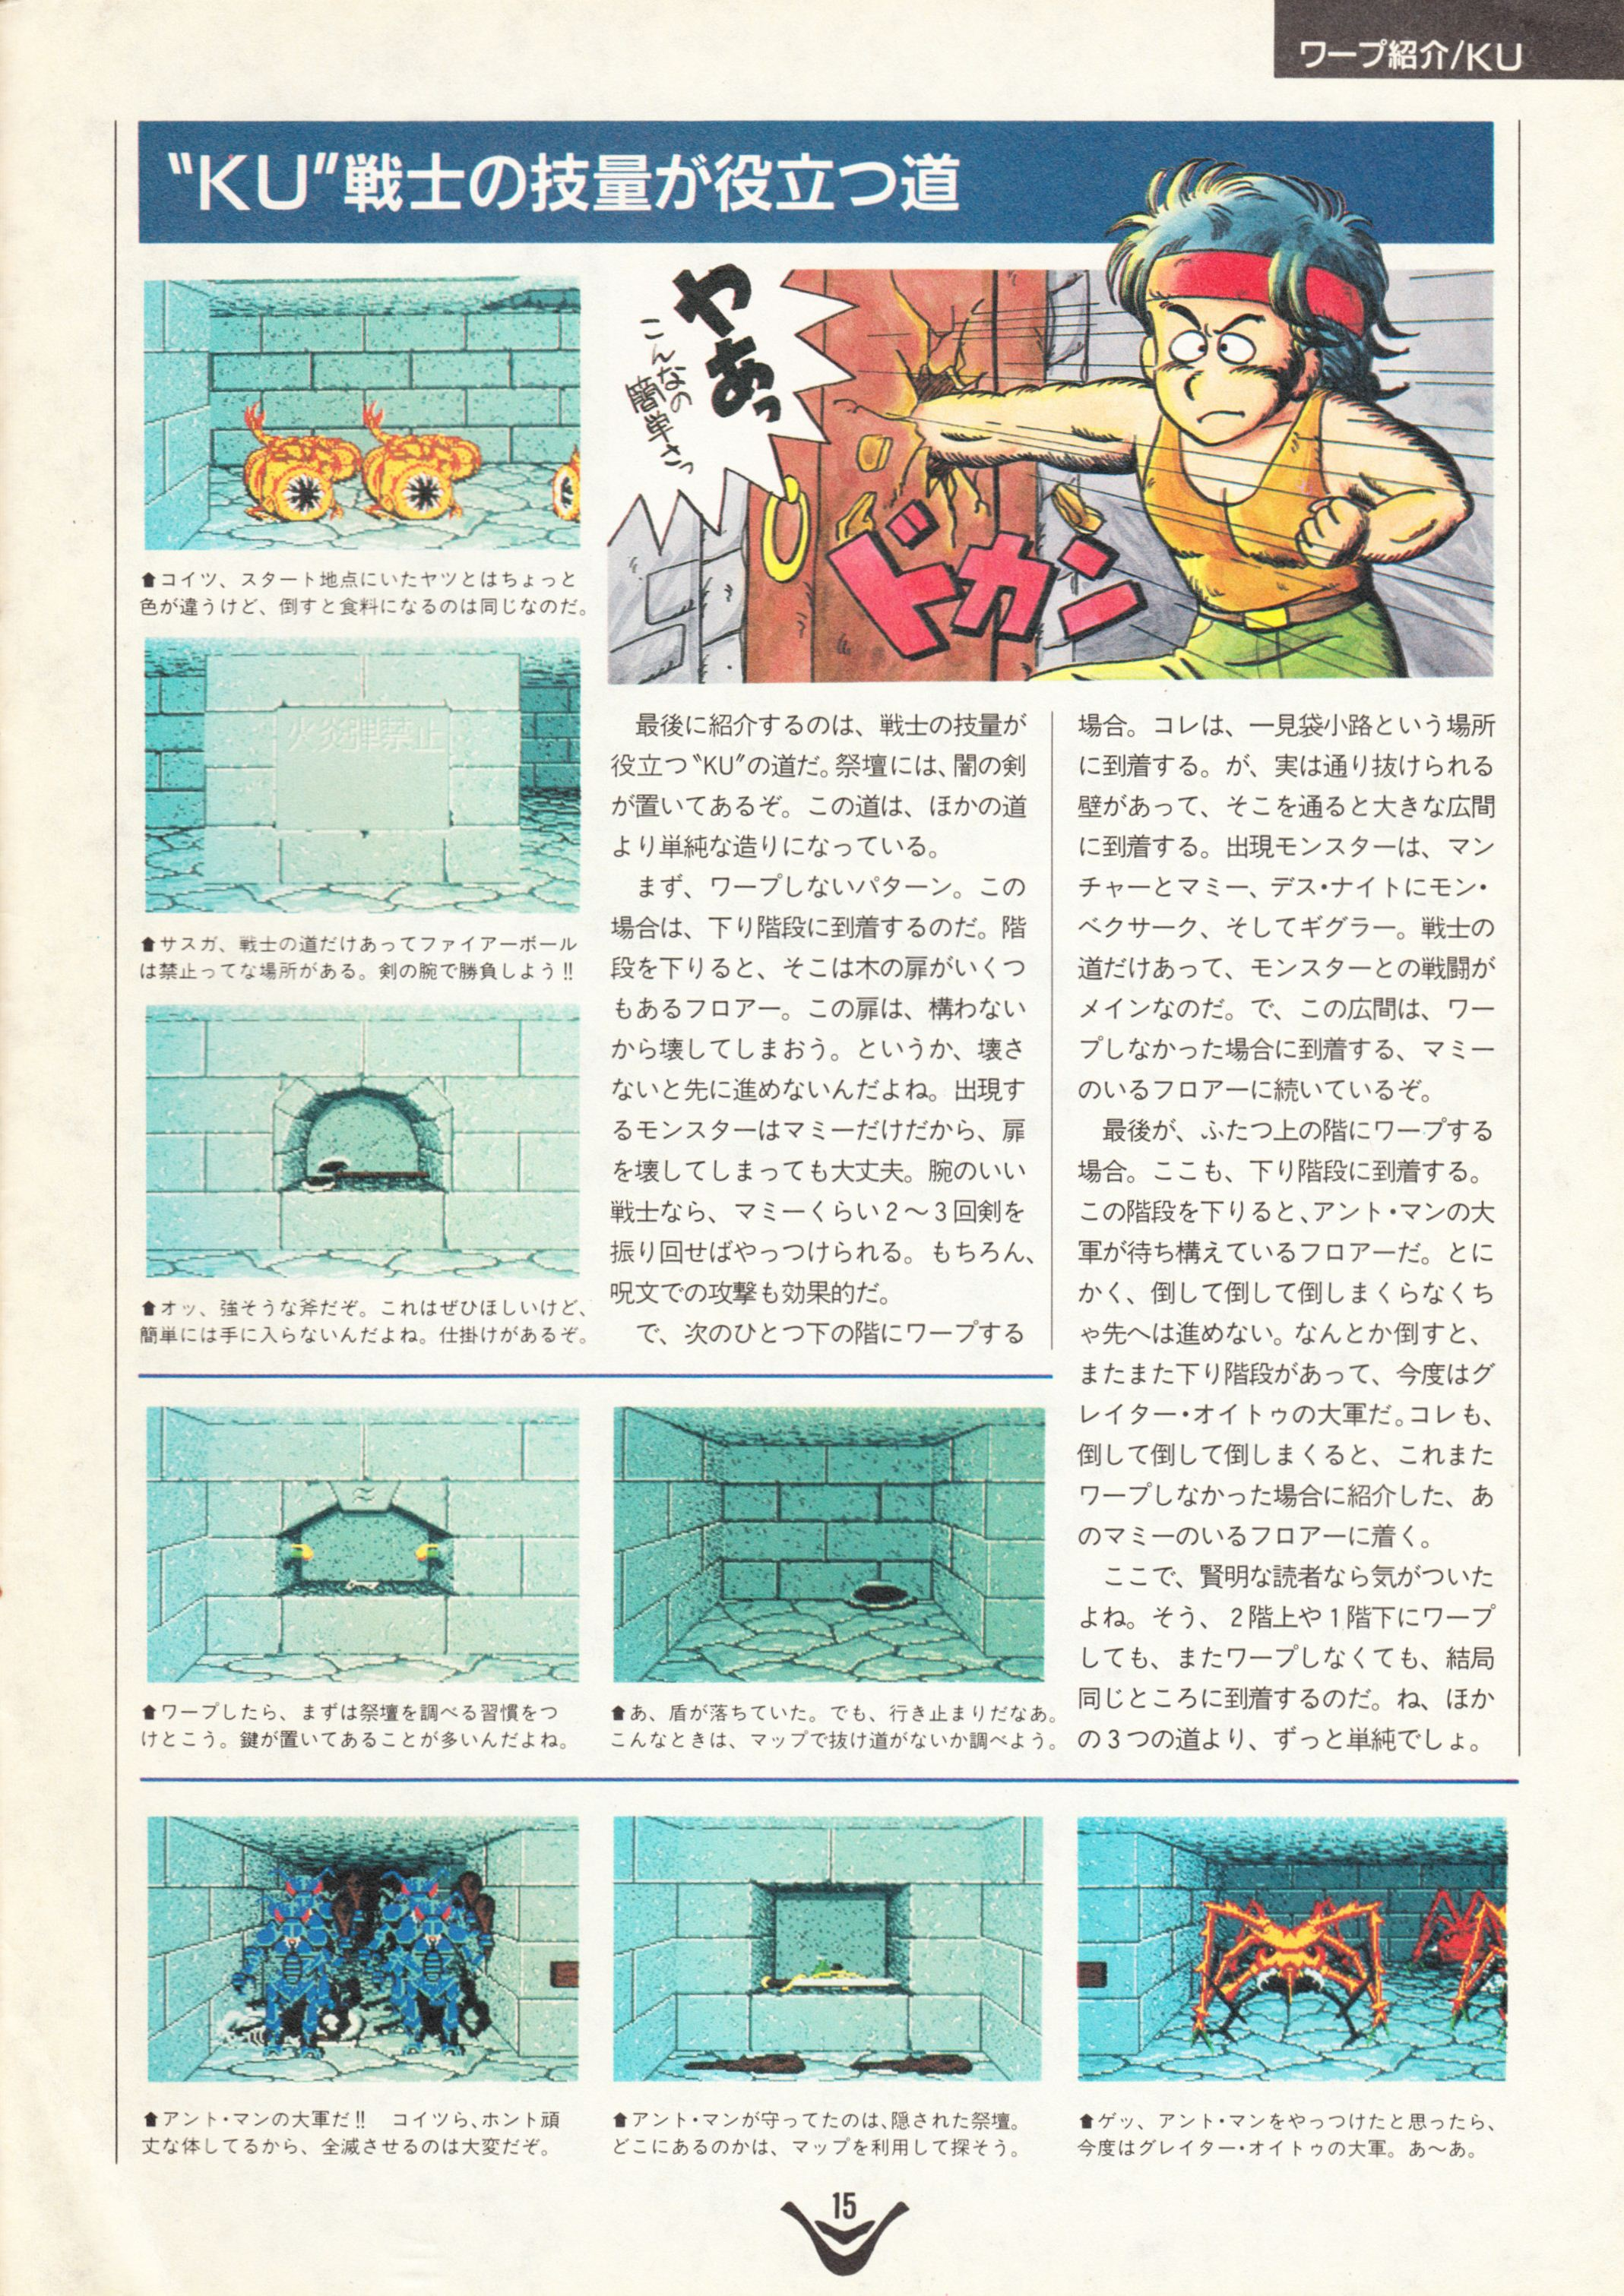 Special Supplement - Chaos Strikes Back Guide published in Japanese magazine 'Login', Vol 10 No 3 01 February 1991, Page 15